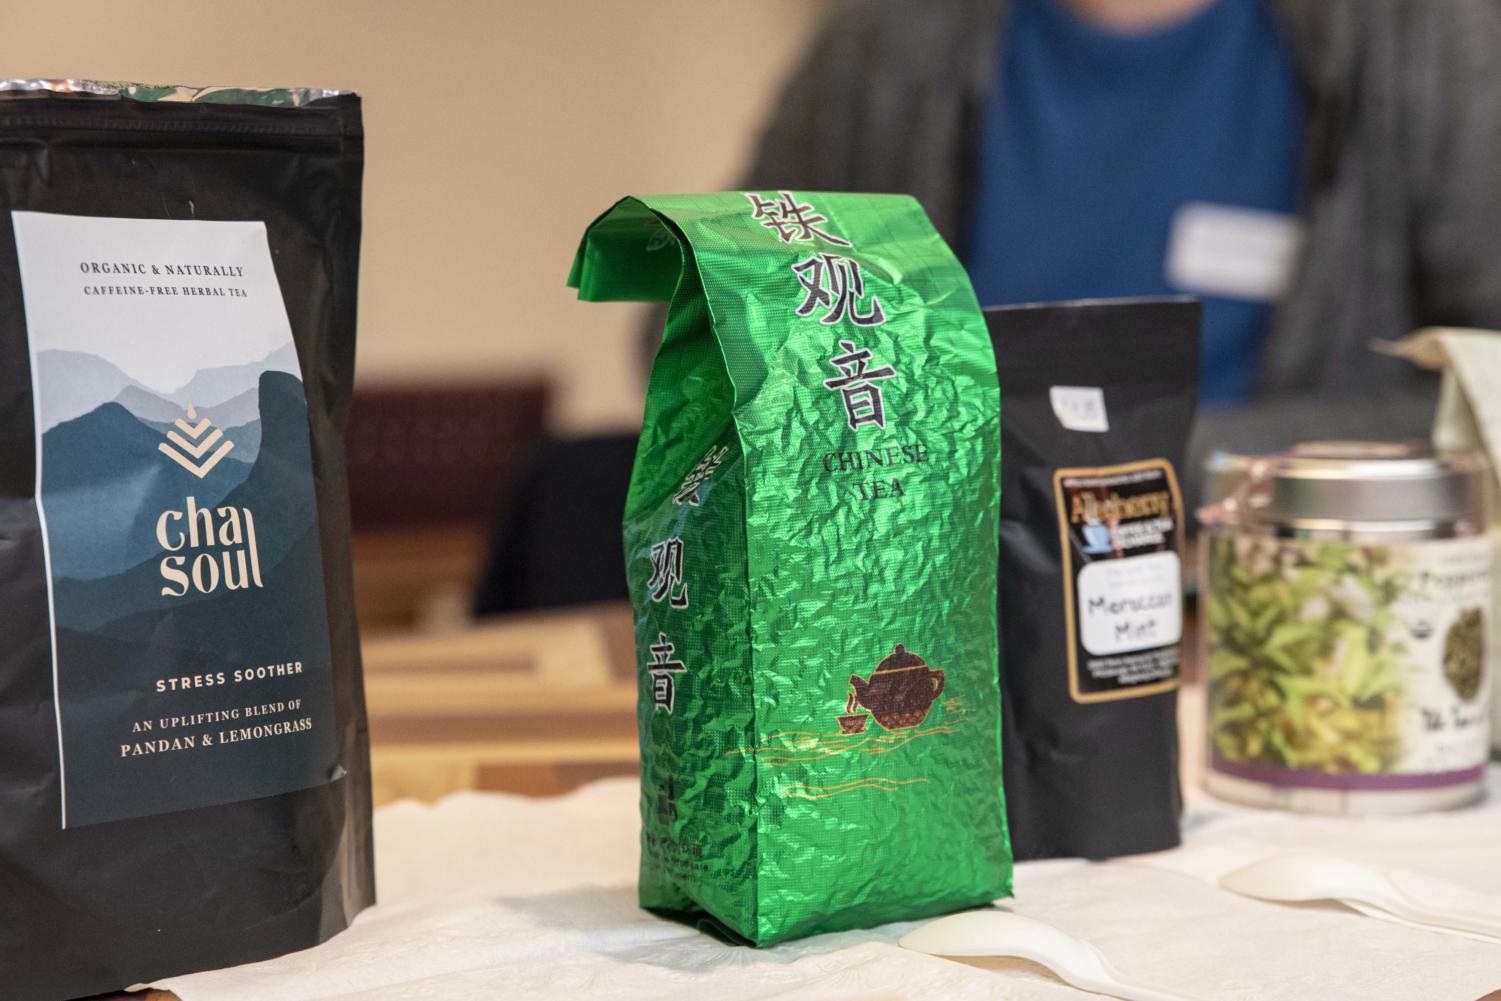 Pitt's Global Hub, located on the first floor of Posvar Hall, will host a free global tea tasting every day this week from 9 a.m. to noon.